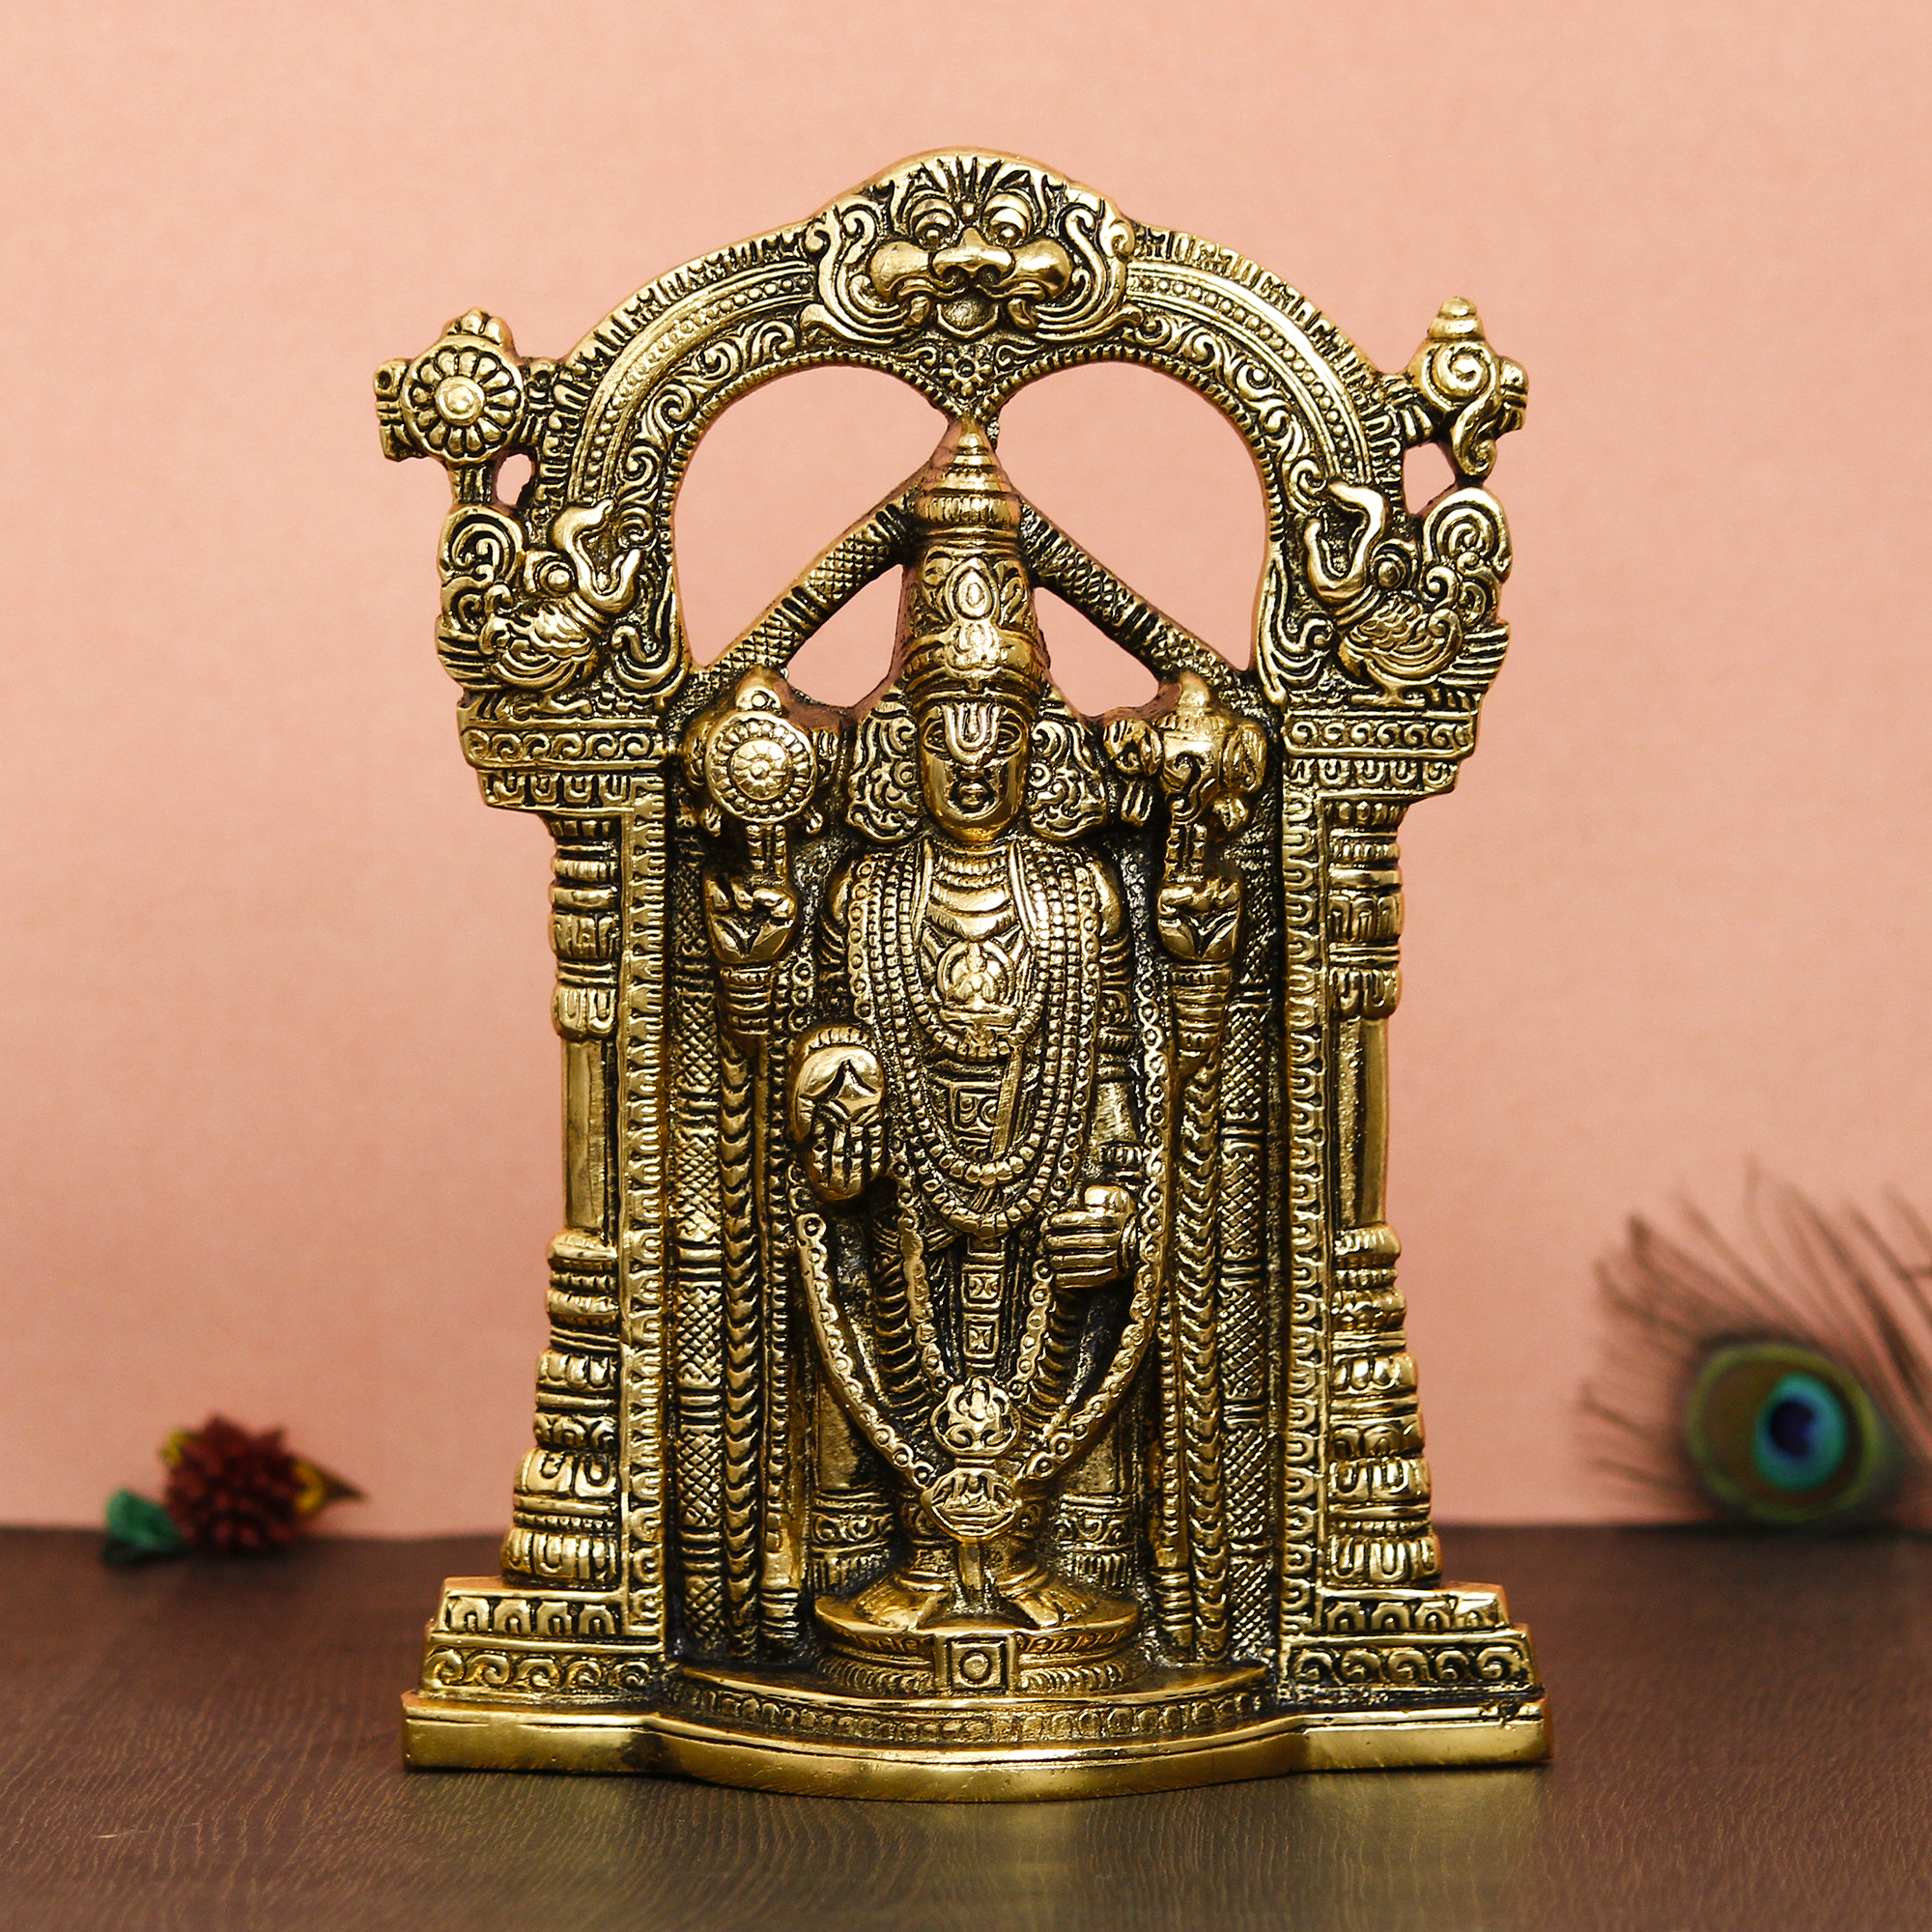 Golden Lord Balaji Idol Metal Decorative Showpiece Indian Home Decor